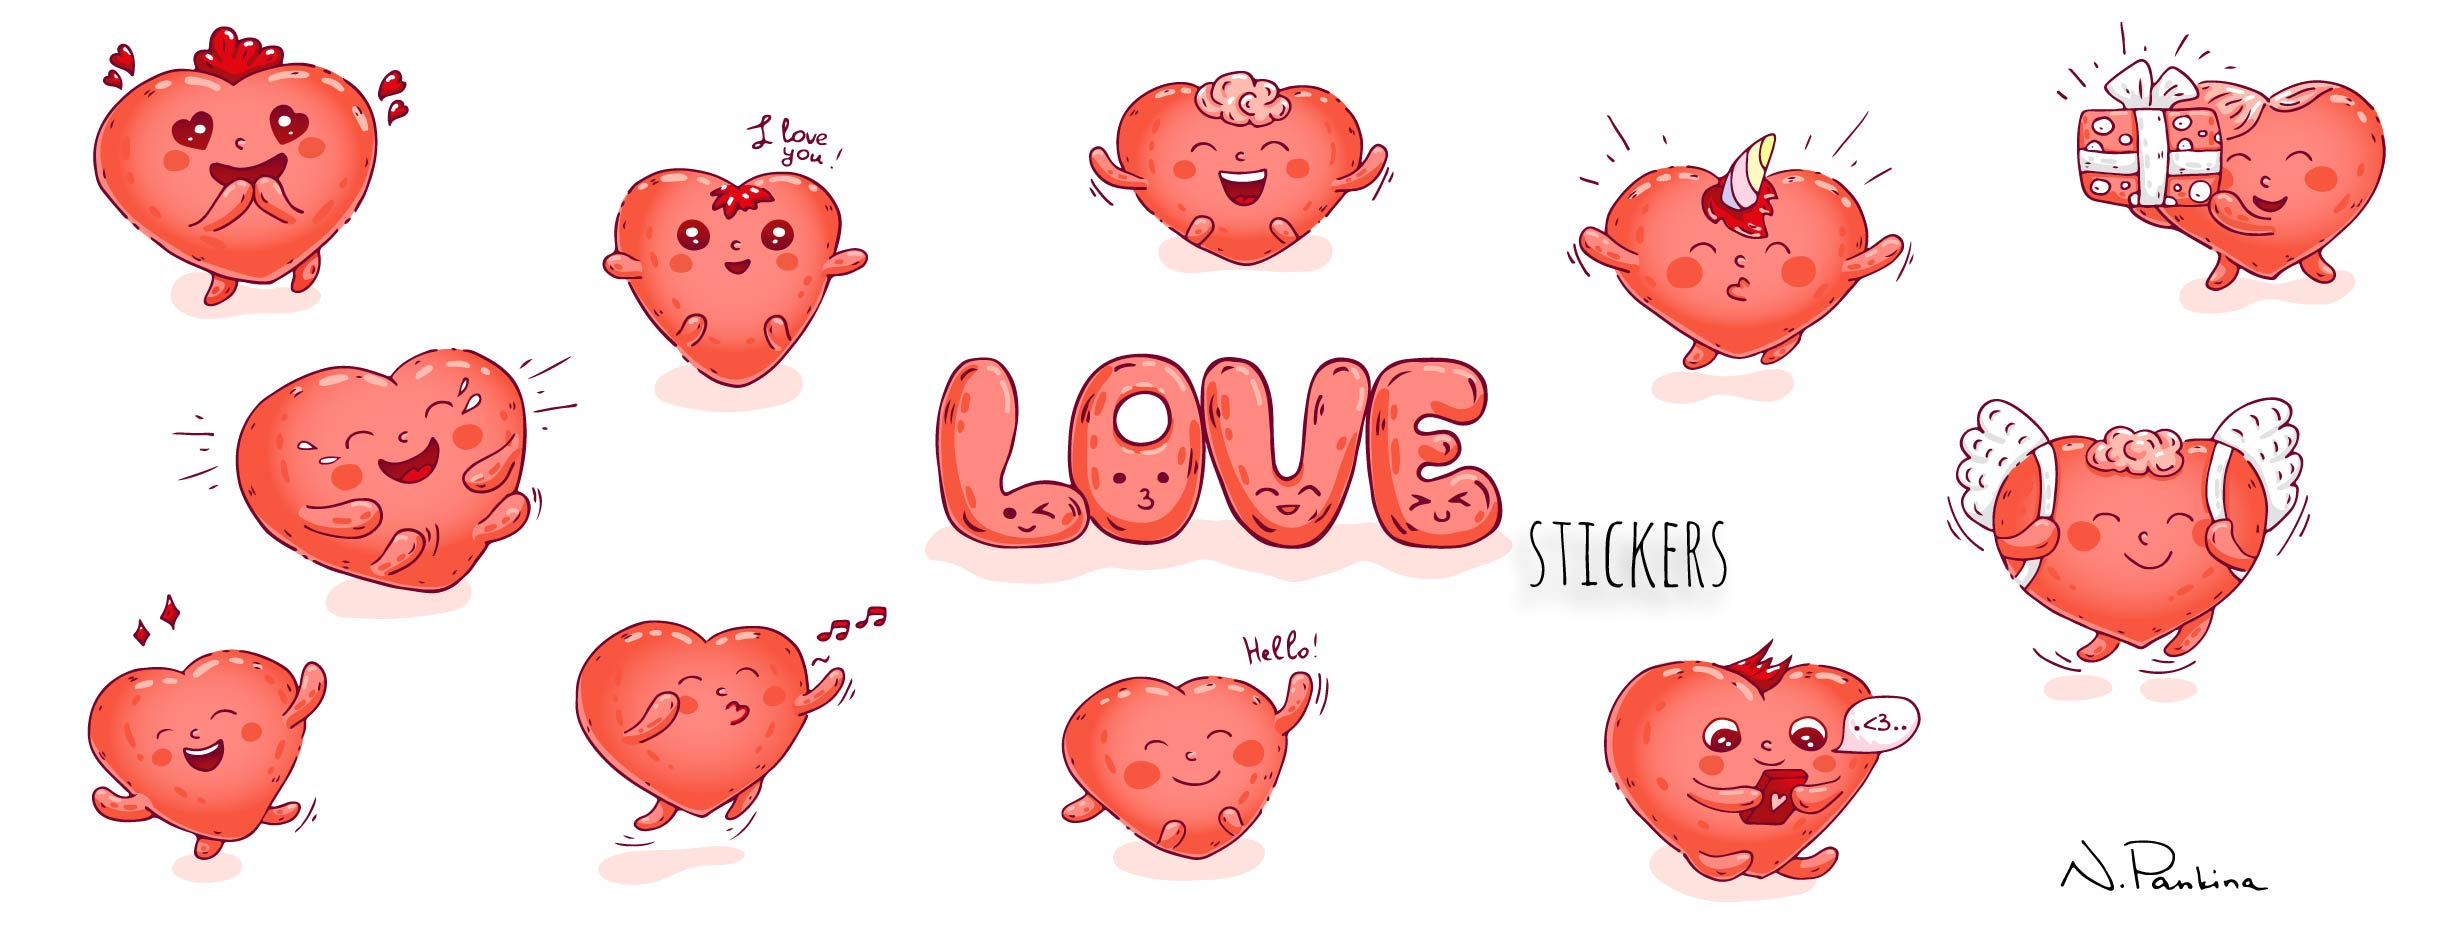 description: Love stickers in cute kawaii style  keywords: design element, doodle, freehand drawing, hand drawn, icon set, illustration, outlined, sign, sketch, symbol, vector, vector icons, vector elements, icon collection, graphic, design, love, heart, banner, object, concept, holiday, web background, song, greeting, elegant, texture, happy valentines day, valentine, music, typography card, romantic, kawaii, emoji, cute  illustrator: Natasha Pankina Natasha Pankina